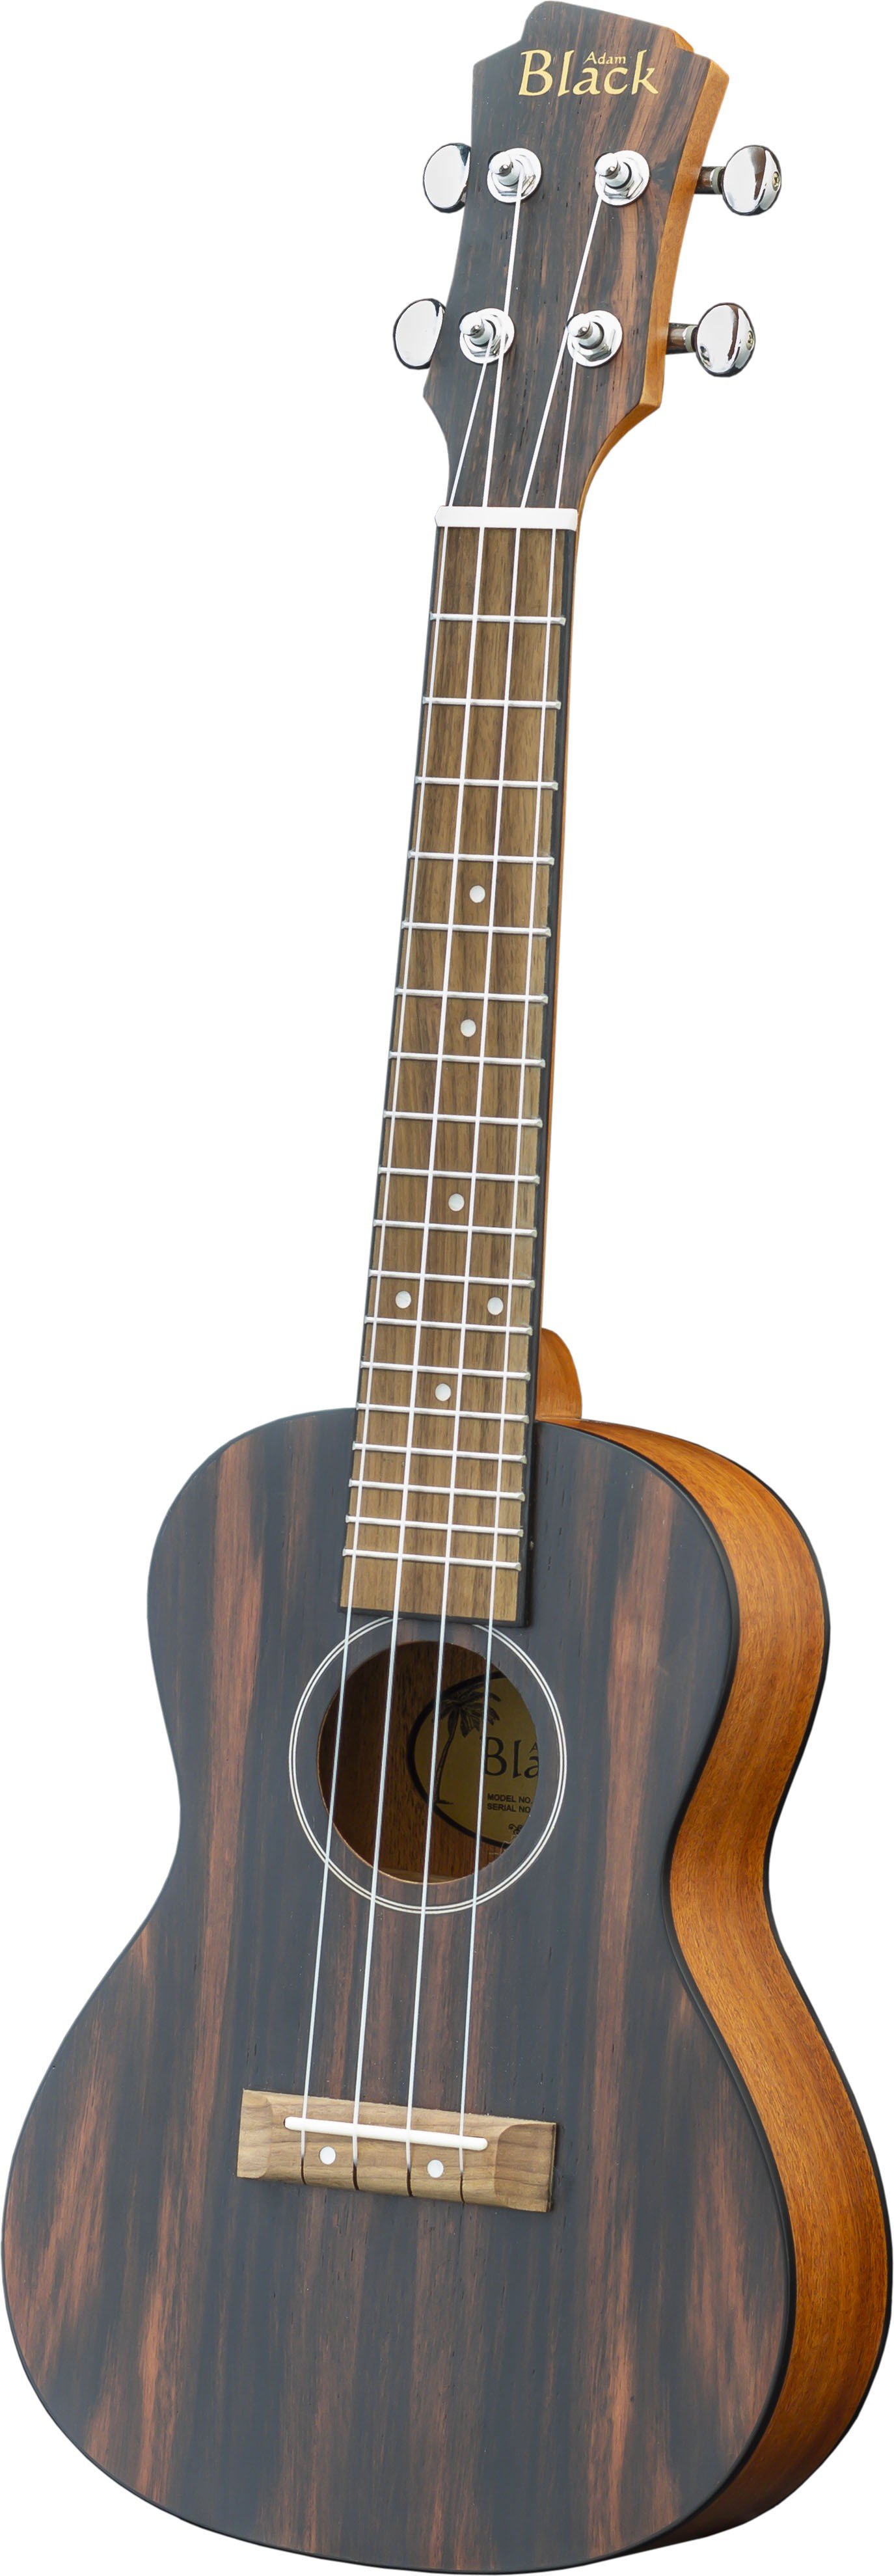 Adam Black Exotic Wood Series Concert Ukulele - Striped Ebony